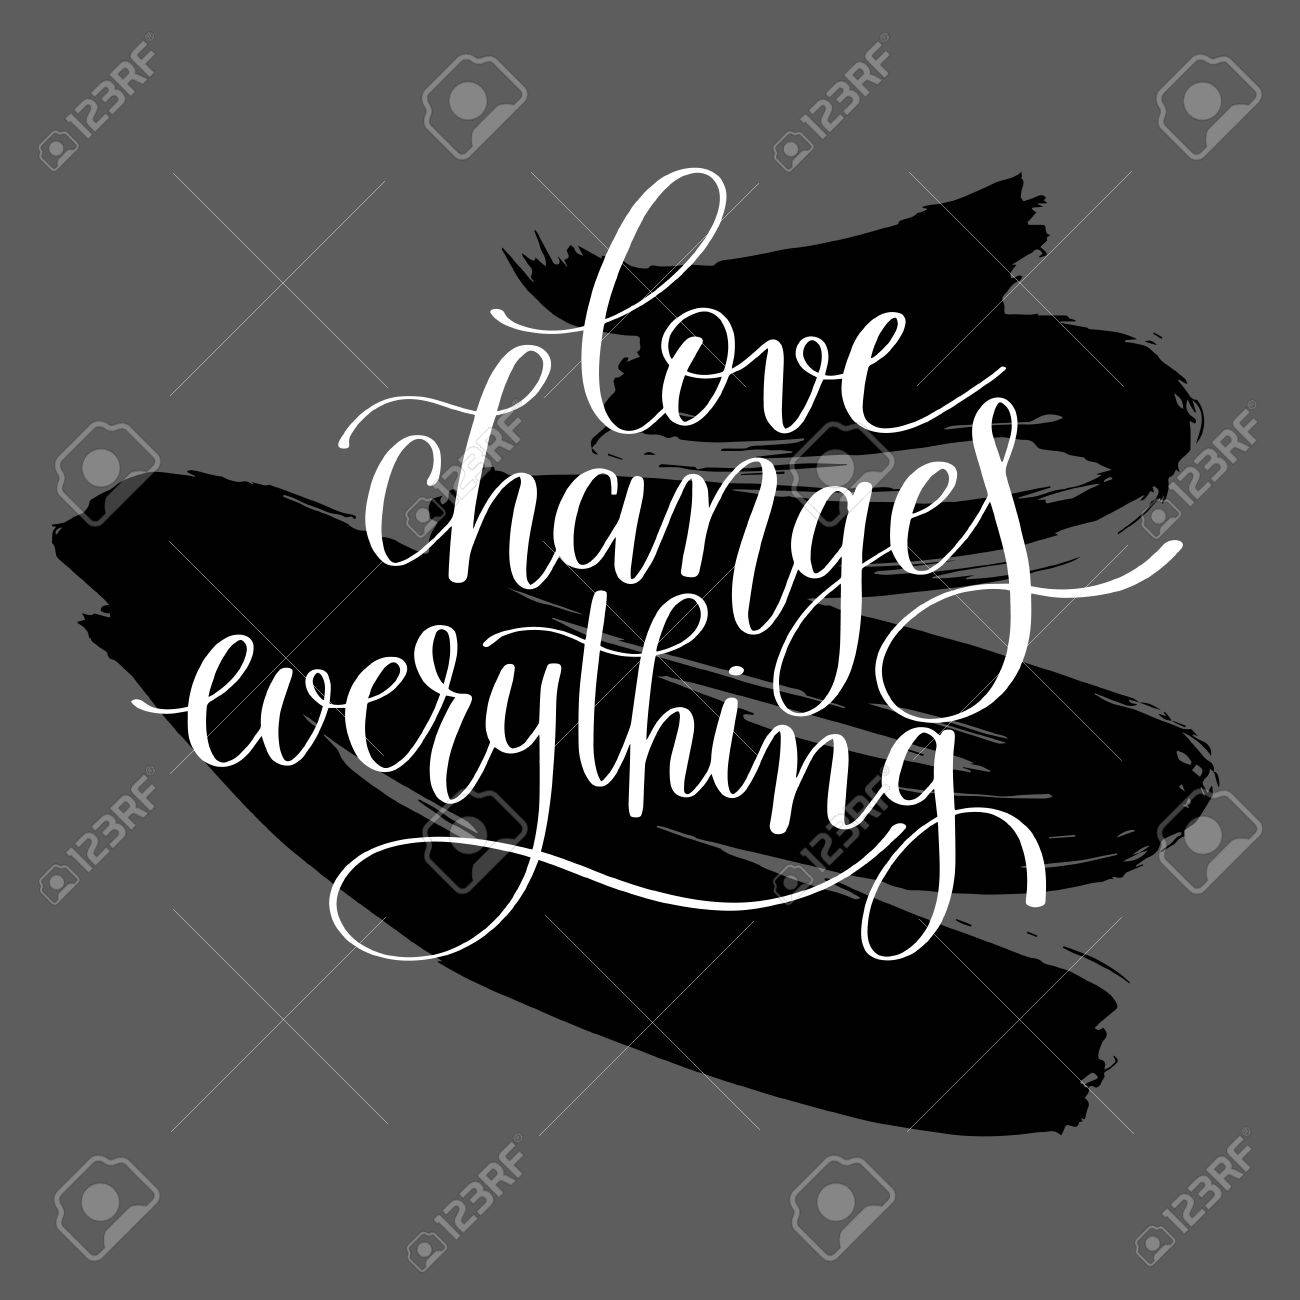 Love Quotes Wedding Invitation Love Changes Everything Handwritten Lettering Quote About Love